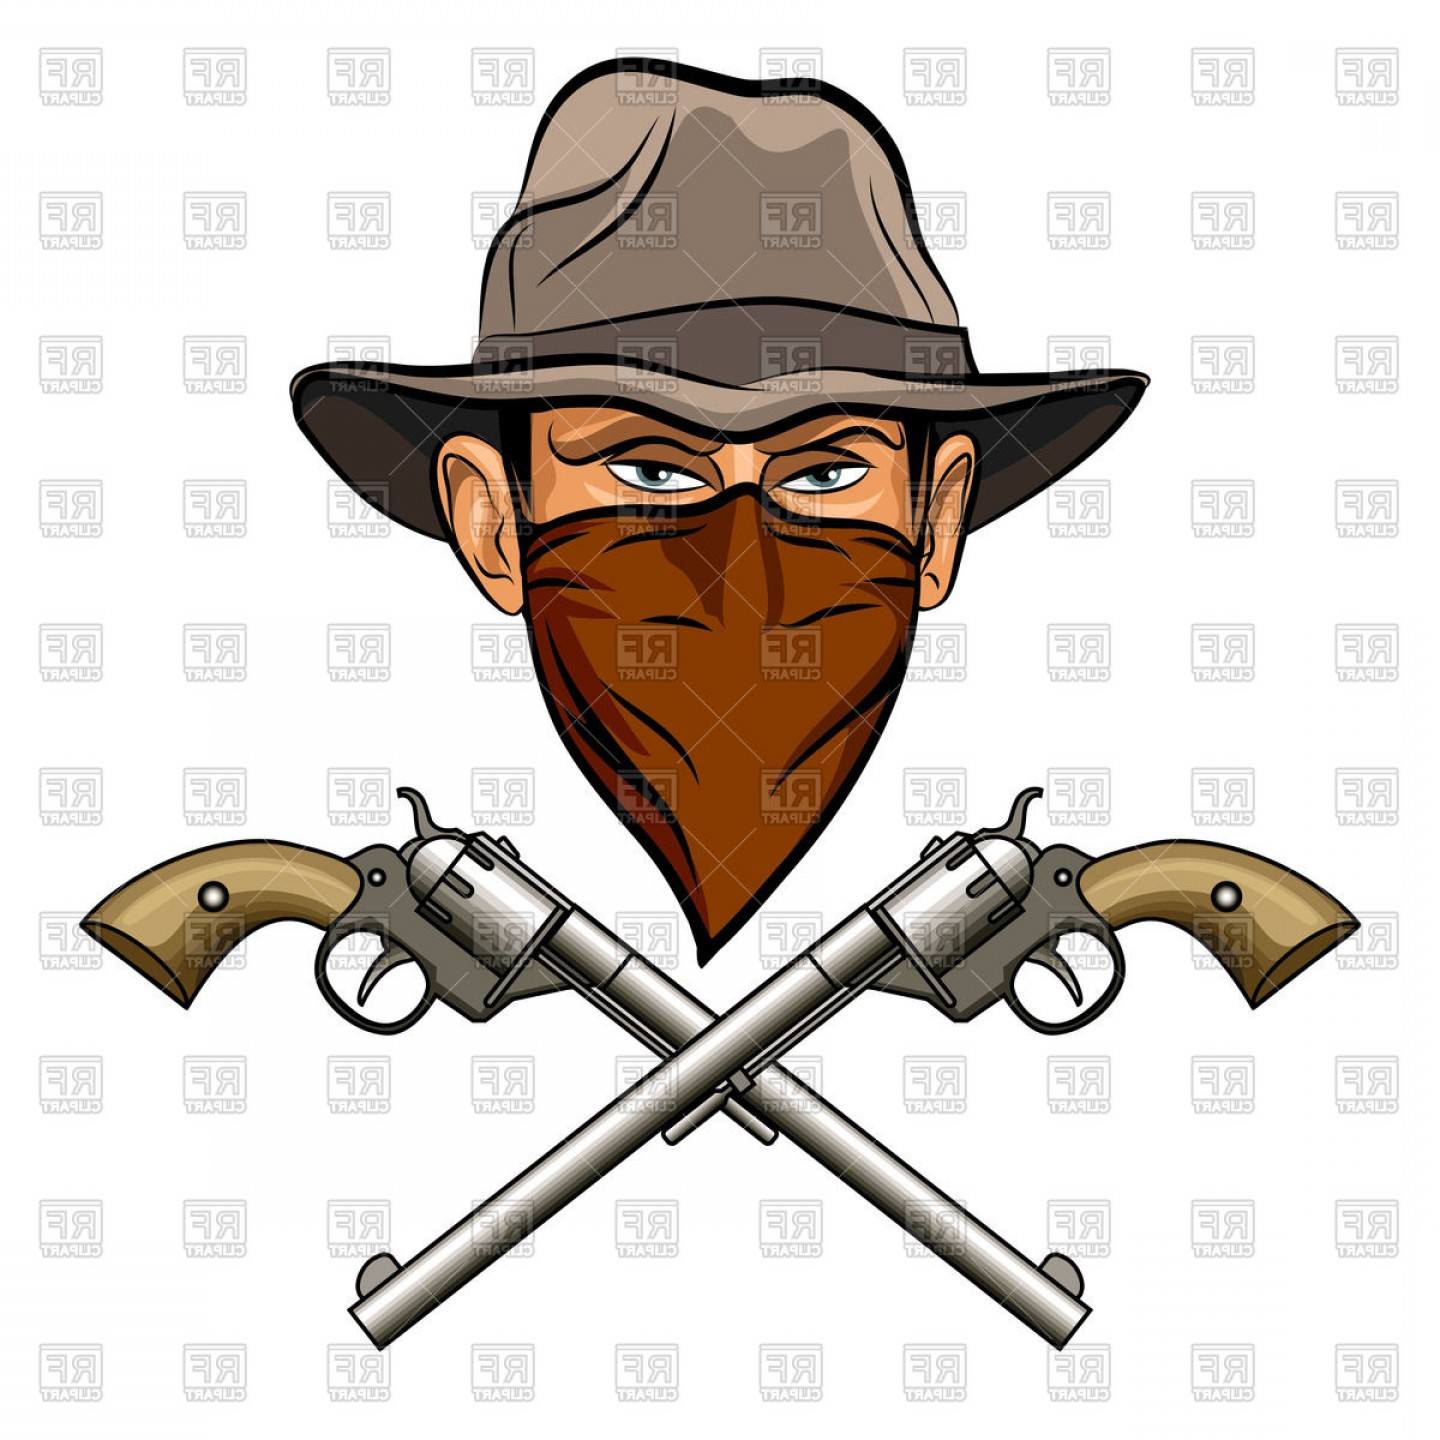 Western revolver clipart clip art free library Bandit In Hat With Bandana On Face And Two Crossed Guns Six ... clip art free library